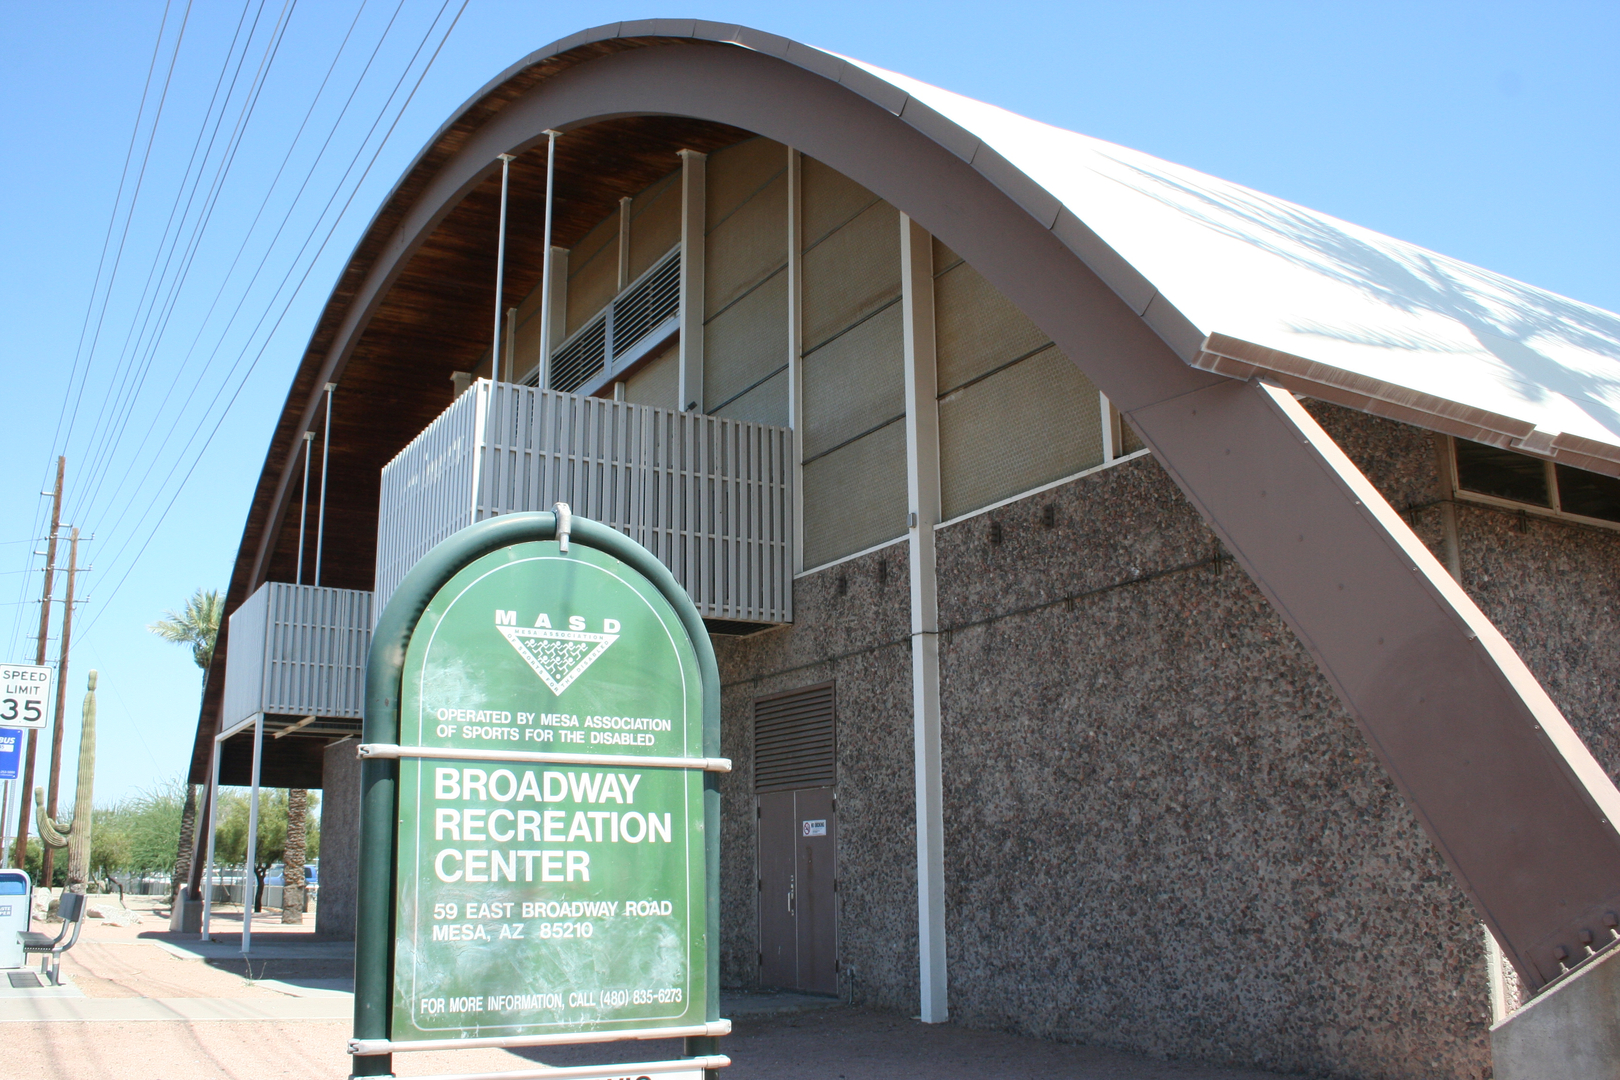 Exterior of the Broadway Recreation Center